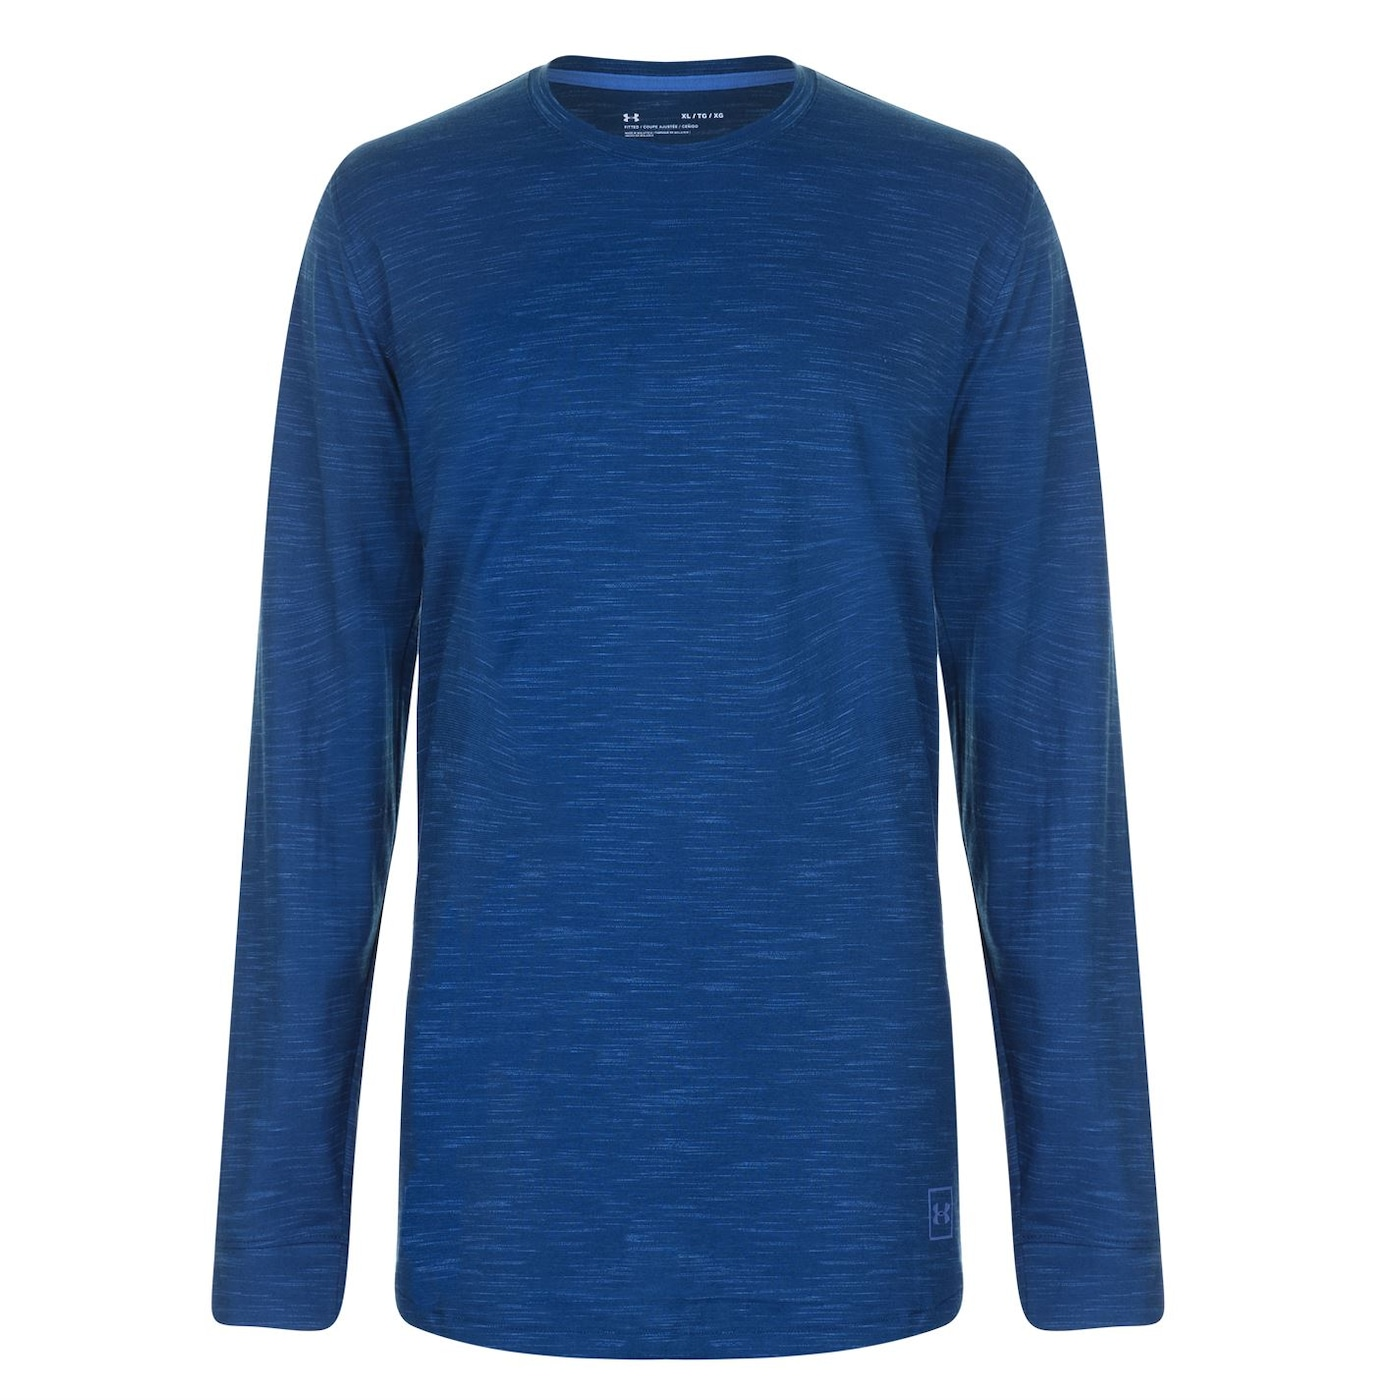 Under Armour Sportstyle LS T Shirt Mens